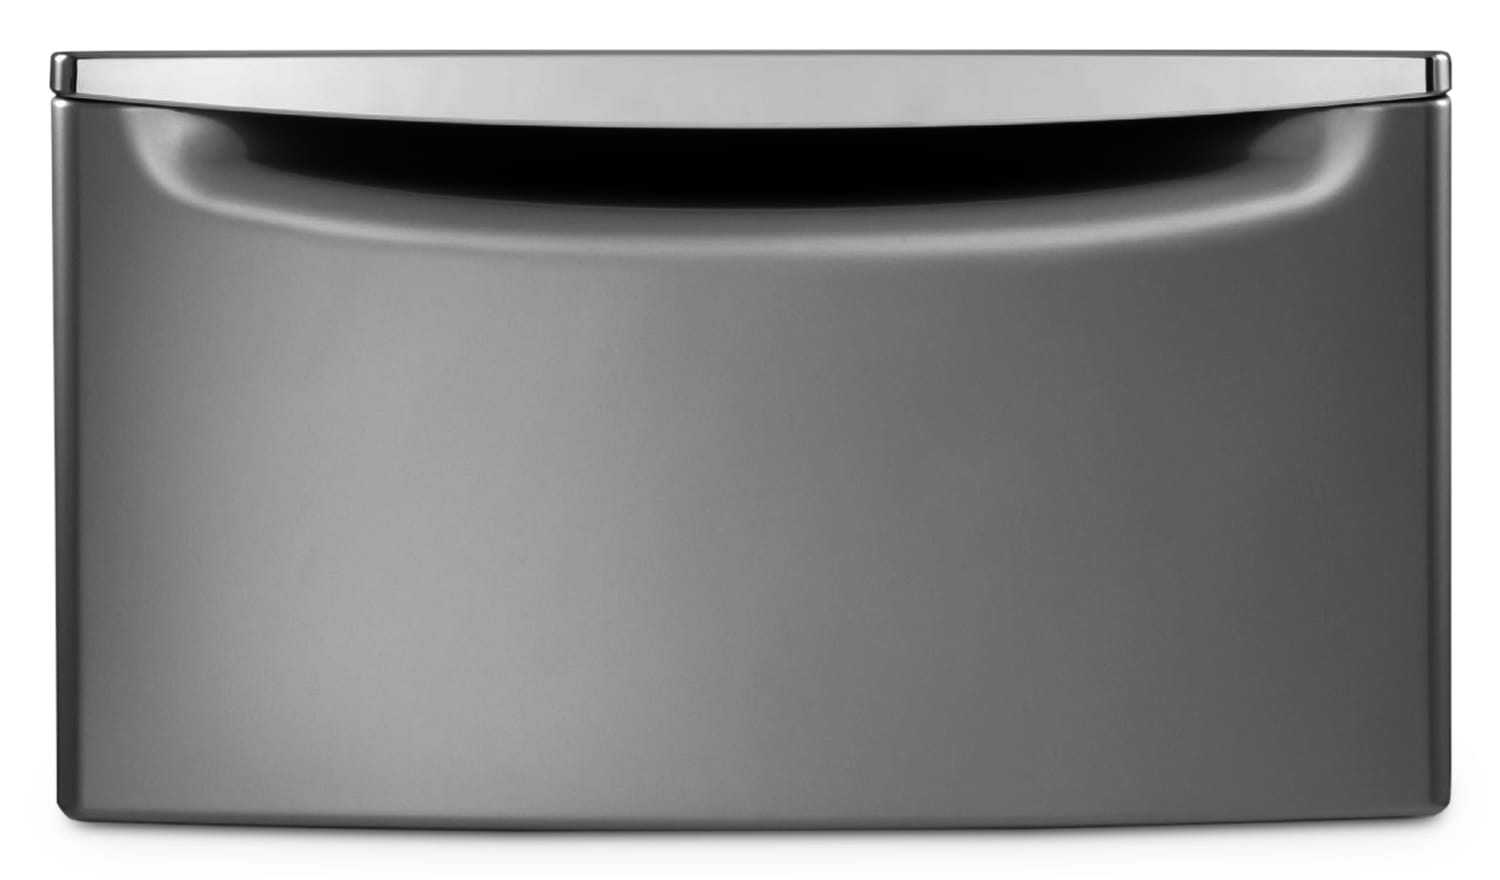 Whirlpool Laundry Pedestal - Chrome Shadow